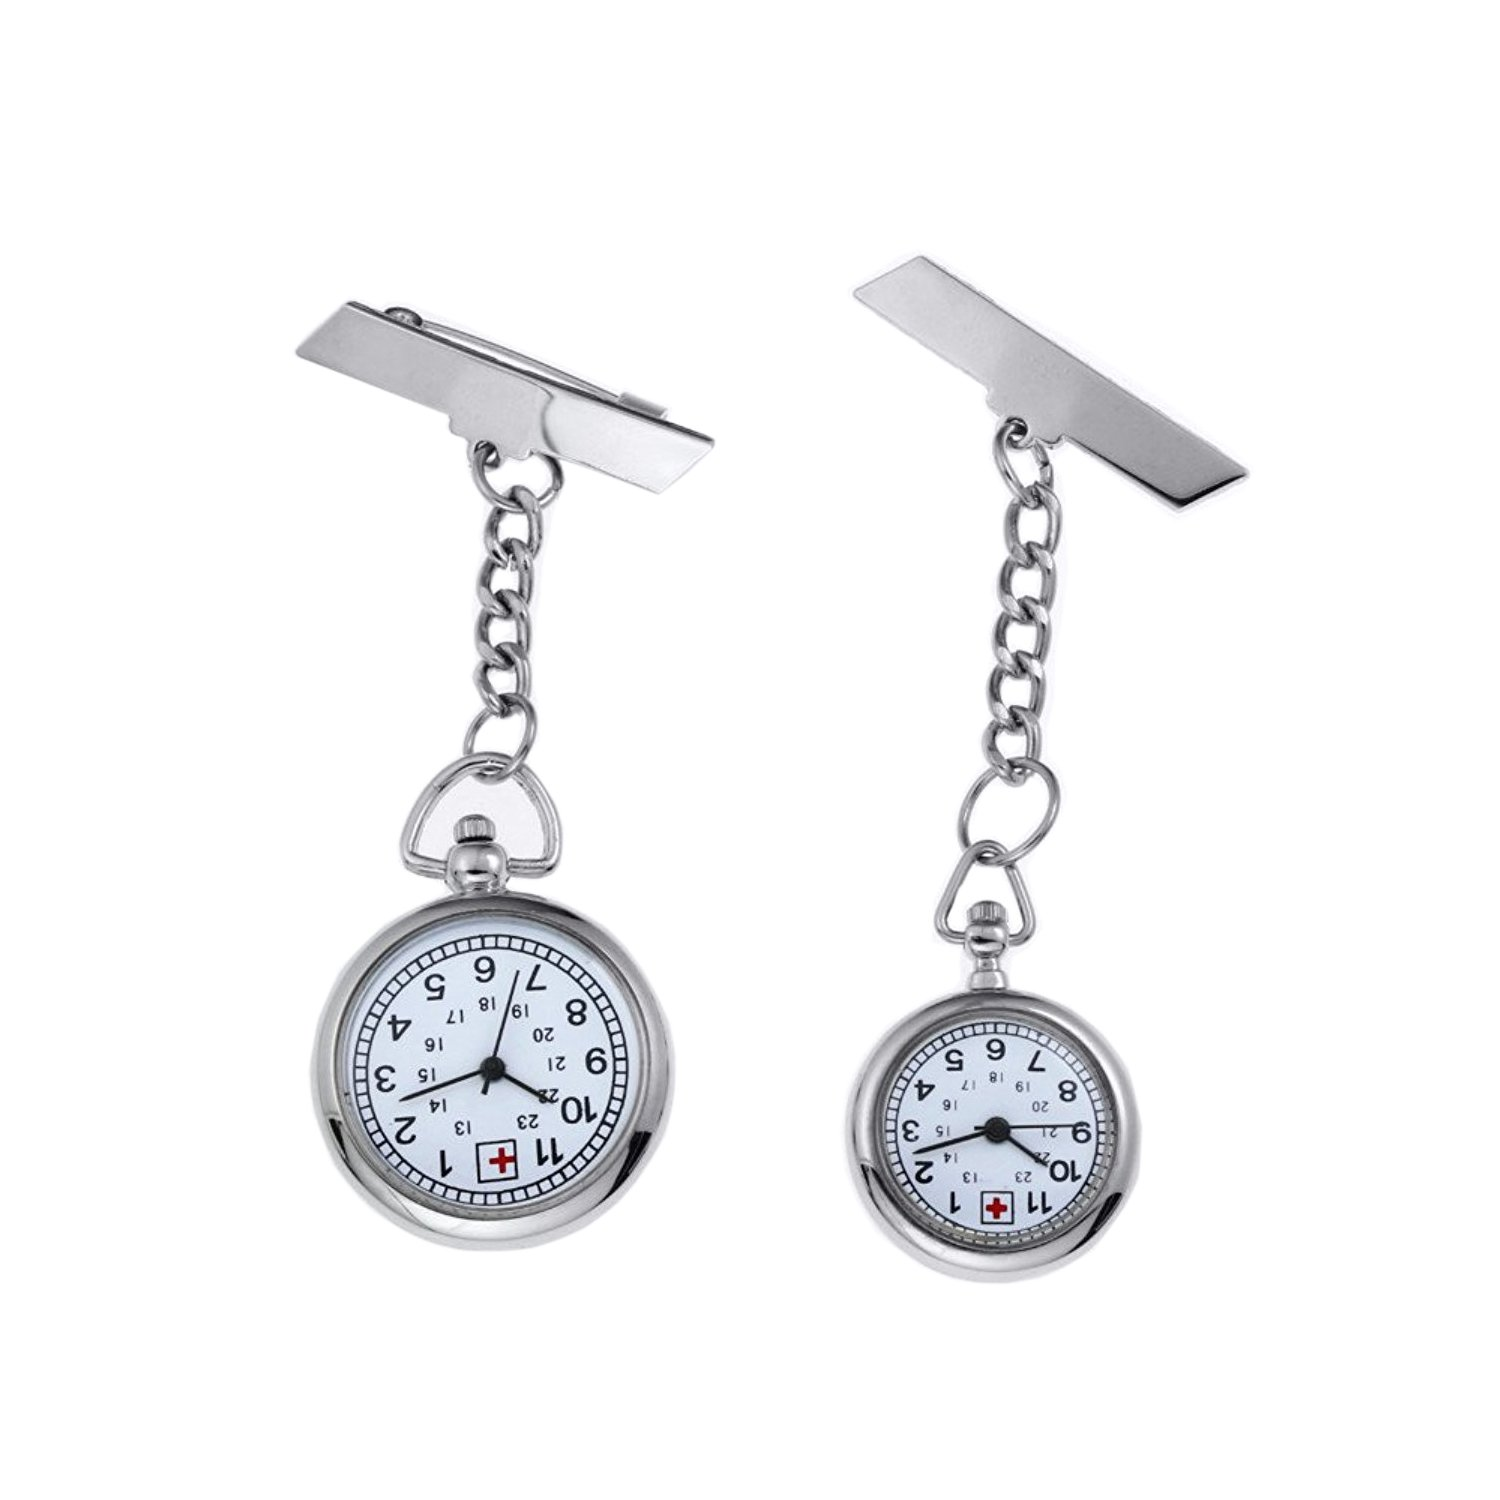 Silver Women's Fashion Nurse Clip-on Fob Brooch Hanging Pocket Watch, Pack of 2 by autulet